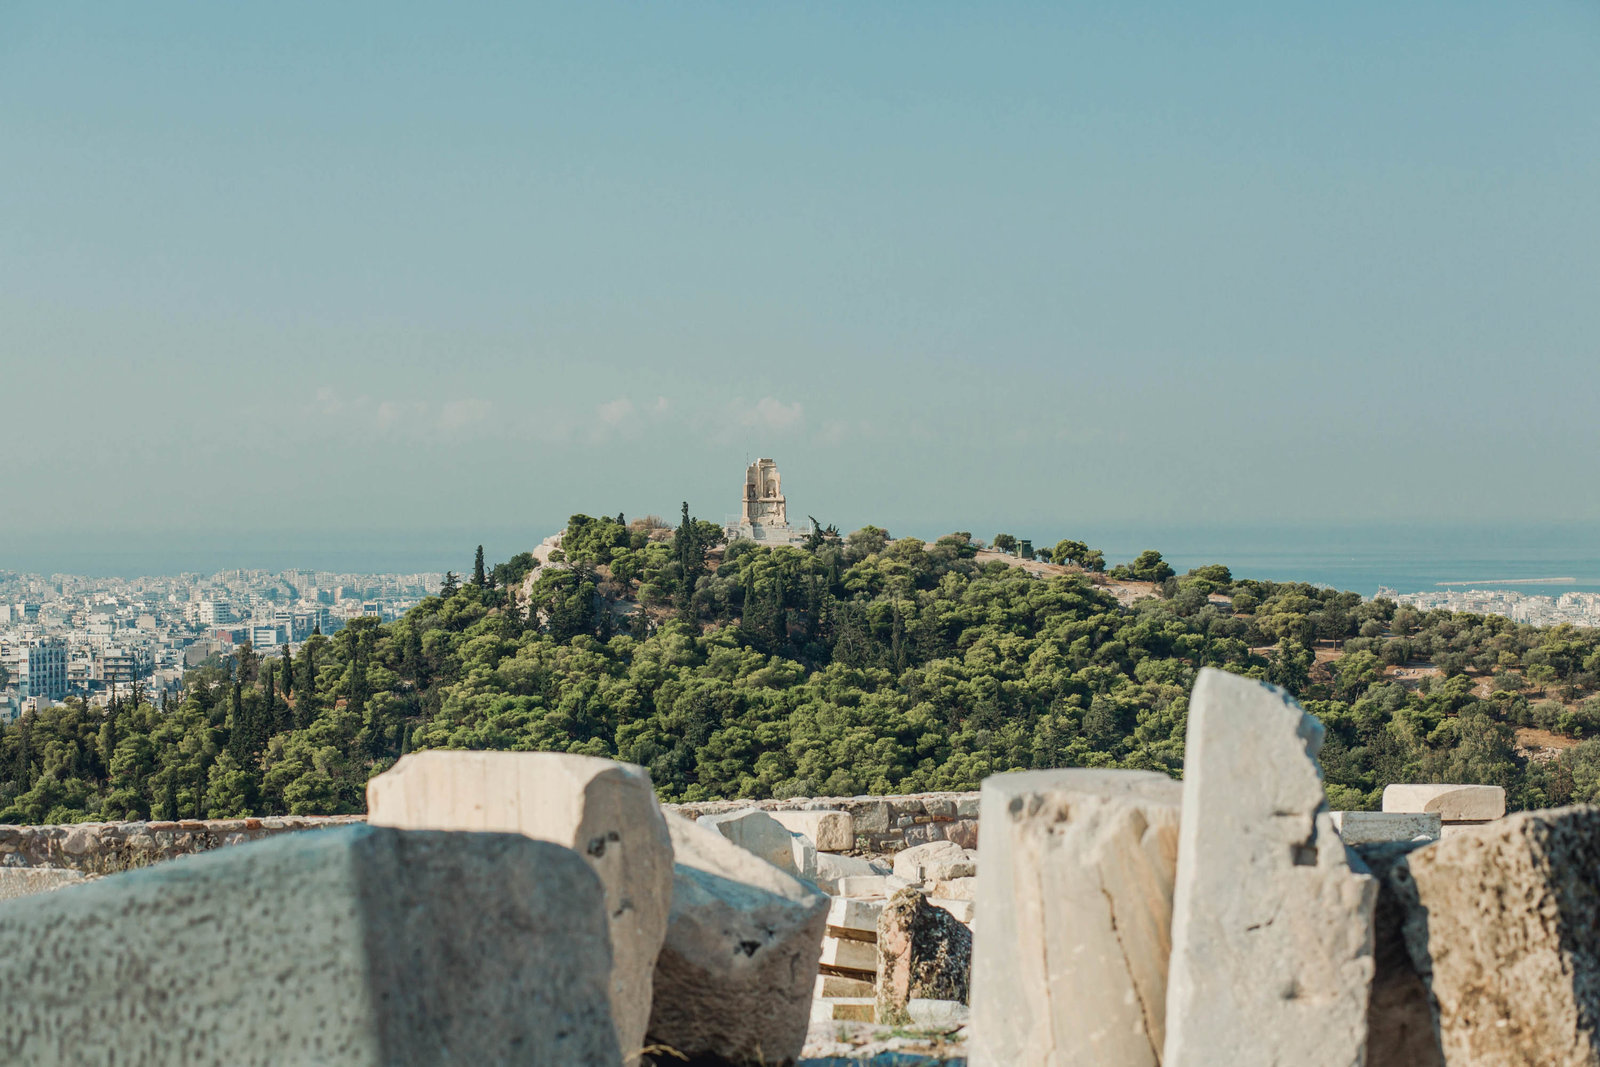 monument-philopappos-acropolis-athens-greece-travel-kate-timbers-photography-911